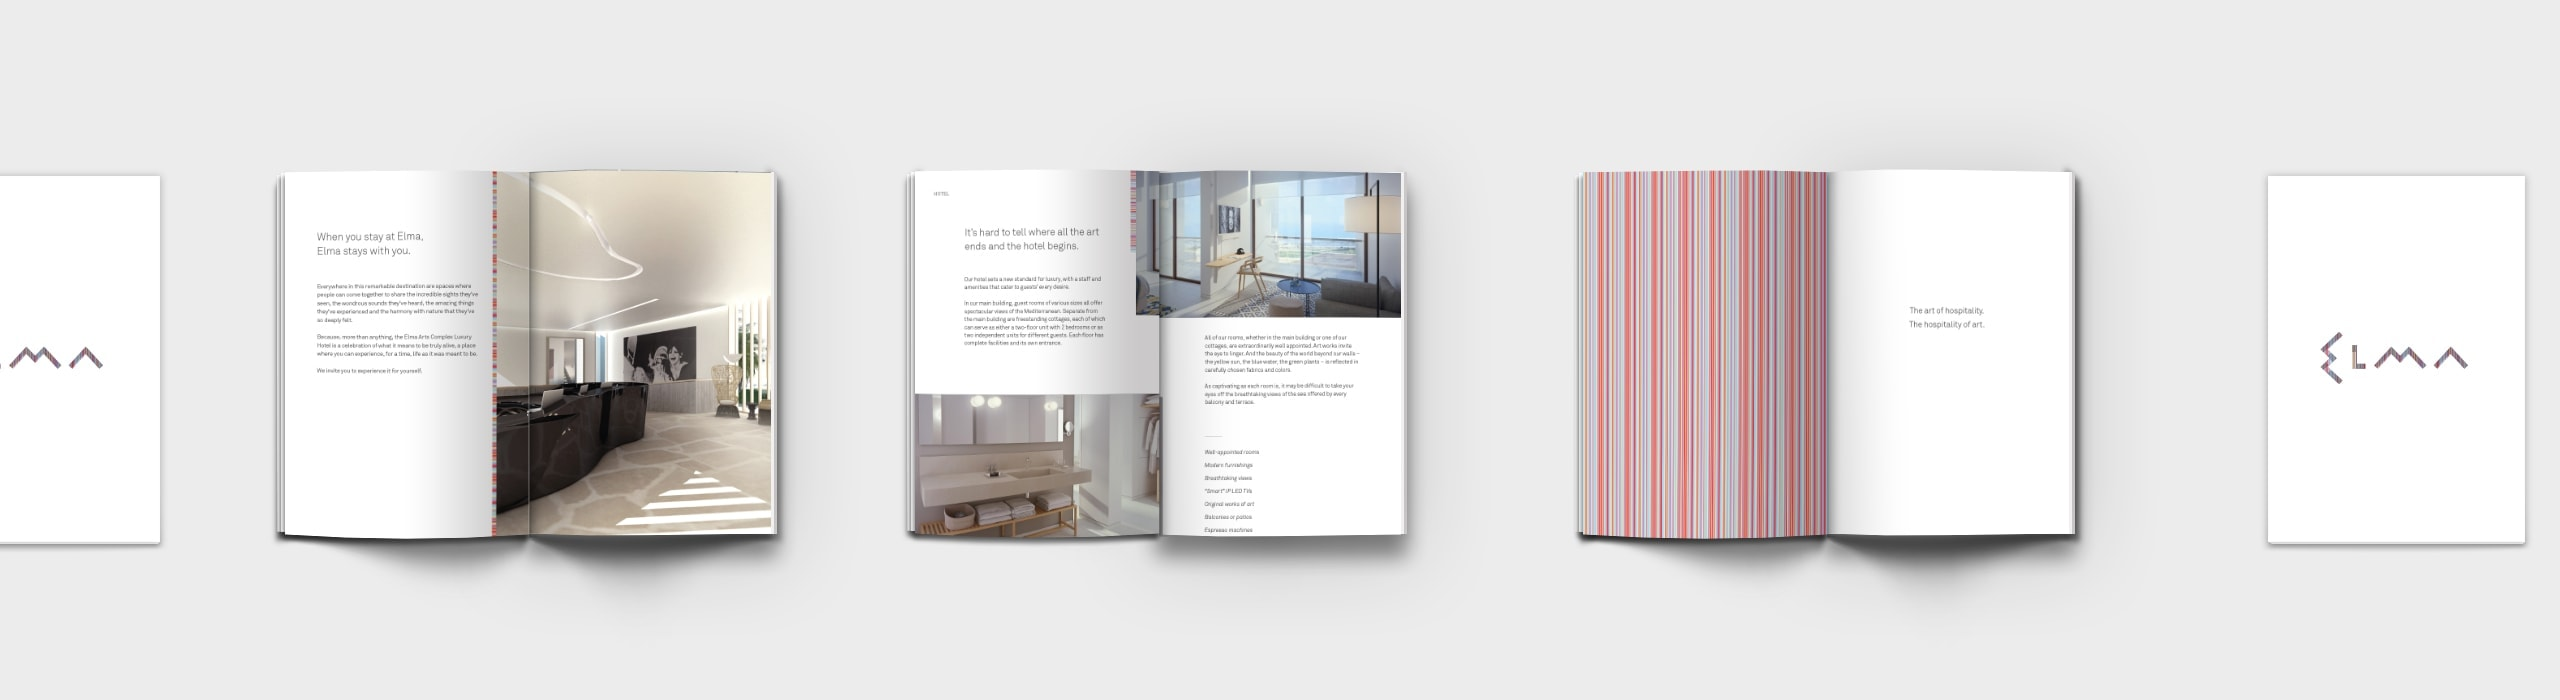 Elma - natie-elma-brochure - Natie Branding Agency